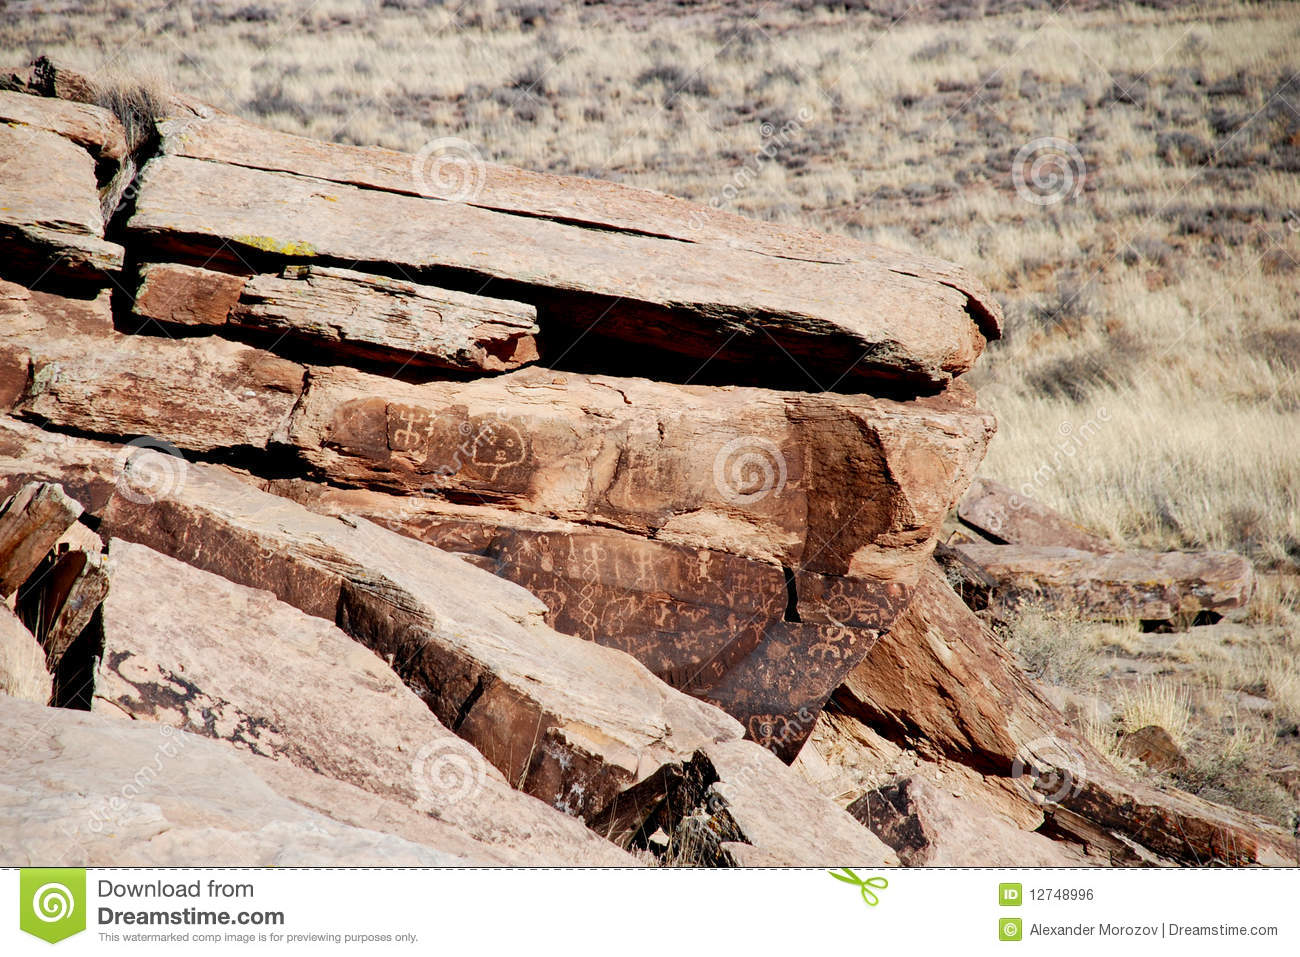 buddhist single women in petrified forest natl pk One of the largest concentrations of petrified wood in the world is found at  petrified forest national park in eastern arizona, about 110 miles.